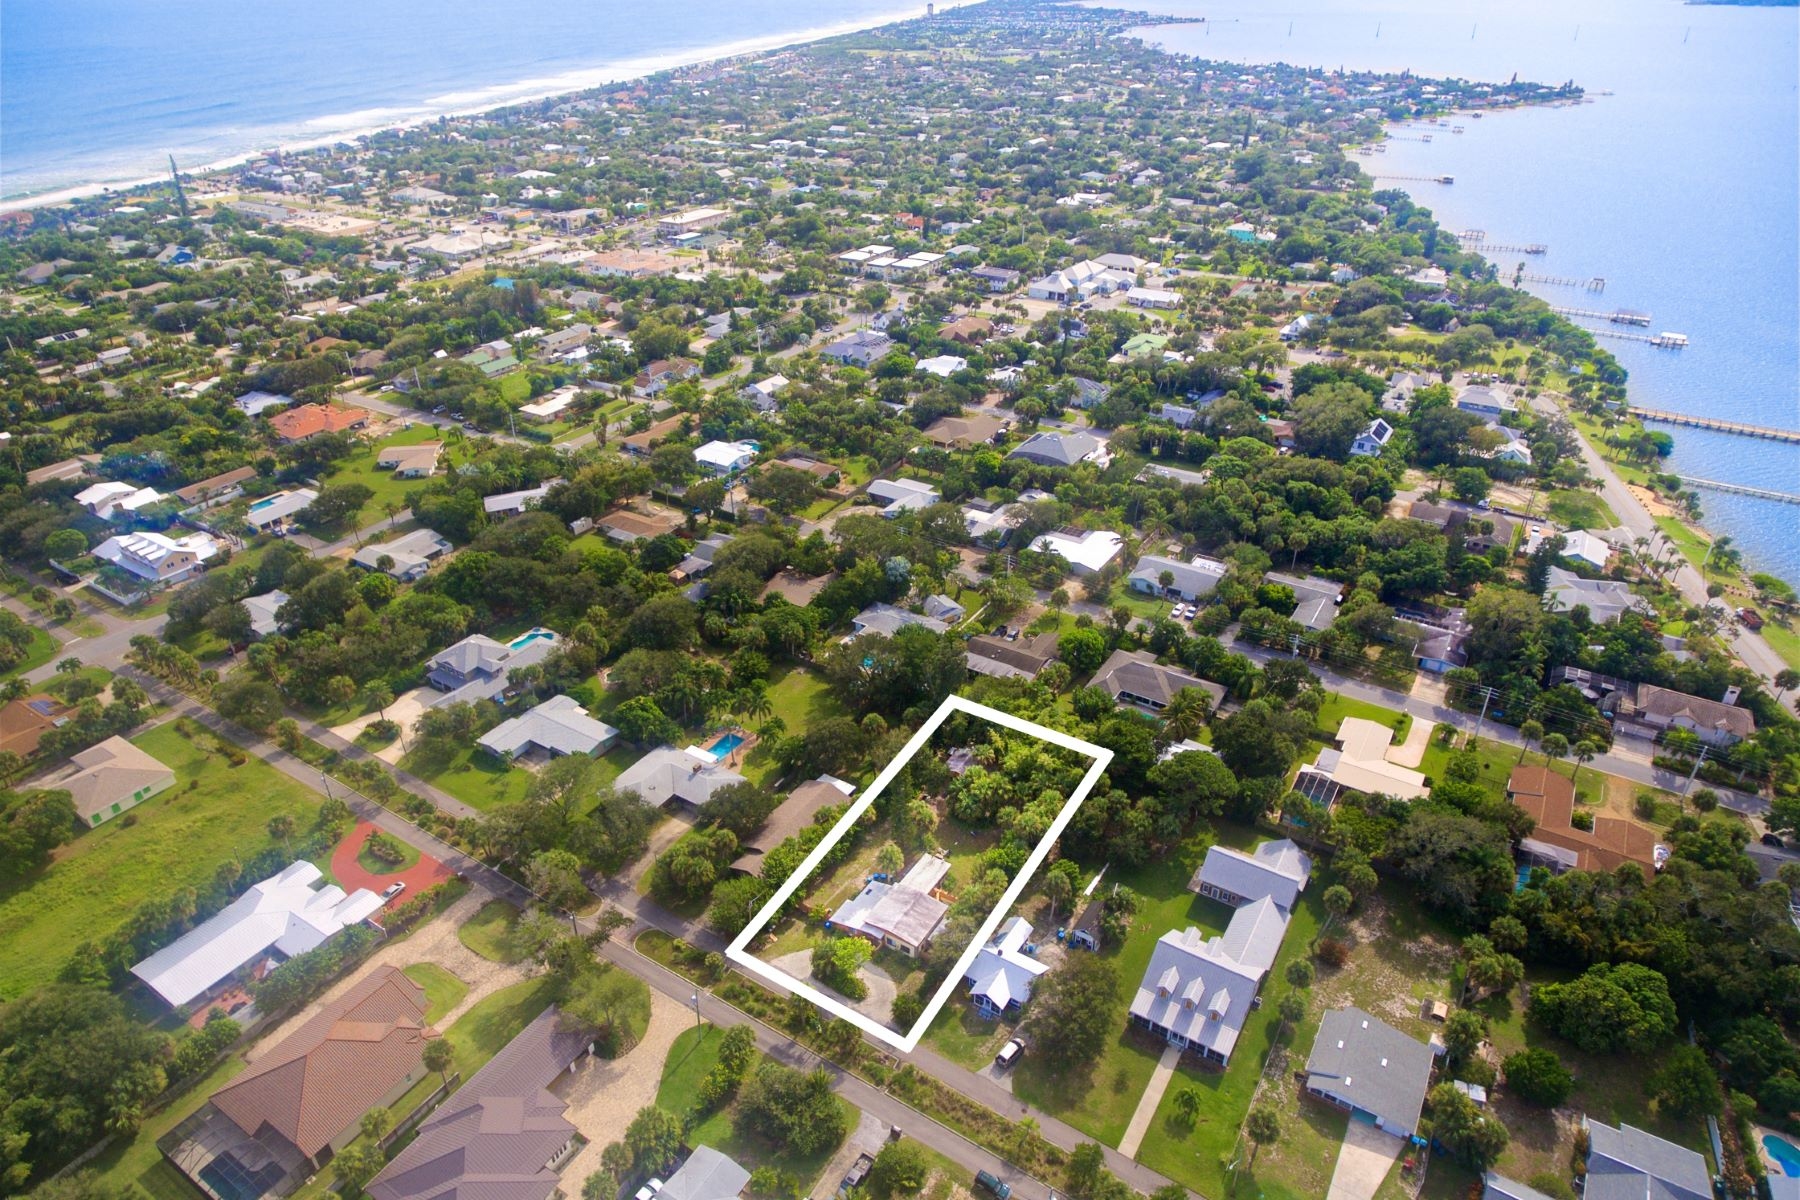 Lots & Land in Melbourne Beach, FL  Melbourne Beach, Florida 32951 Stati Uniti